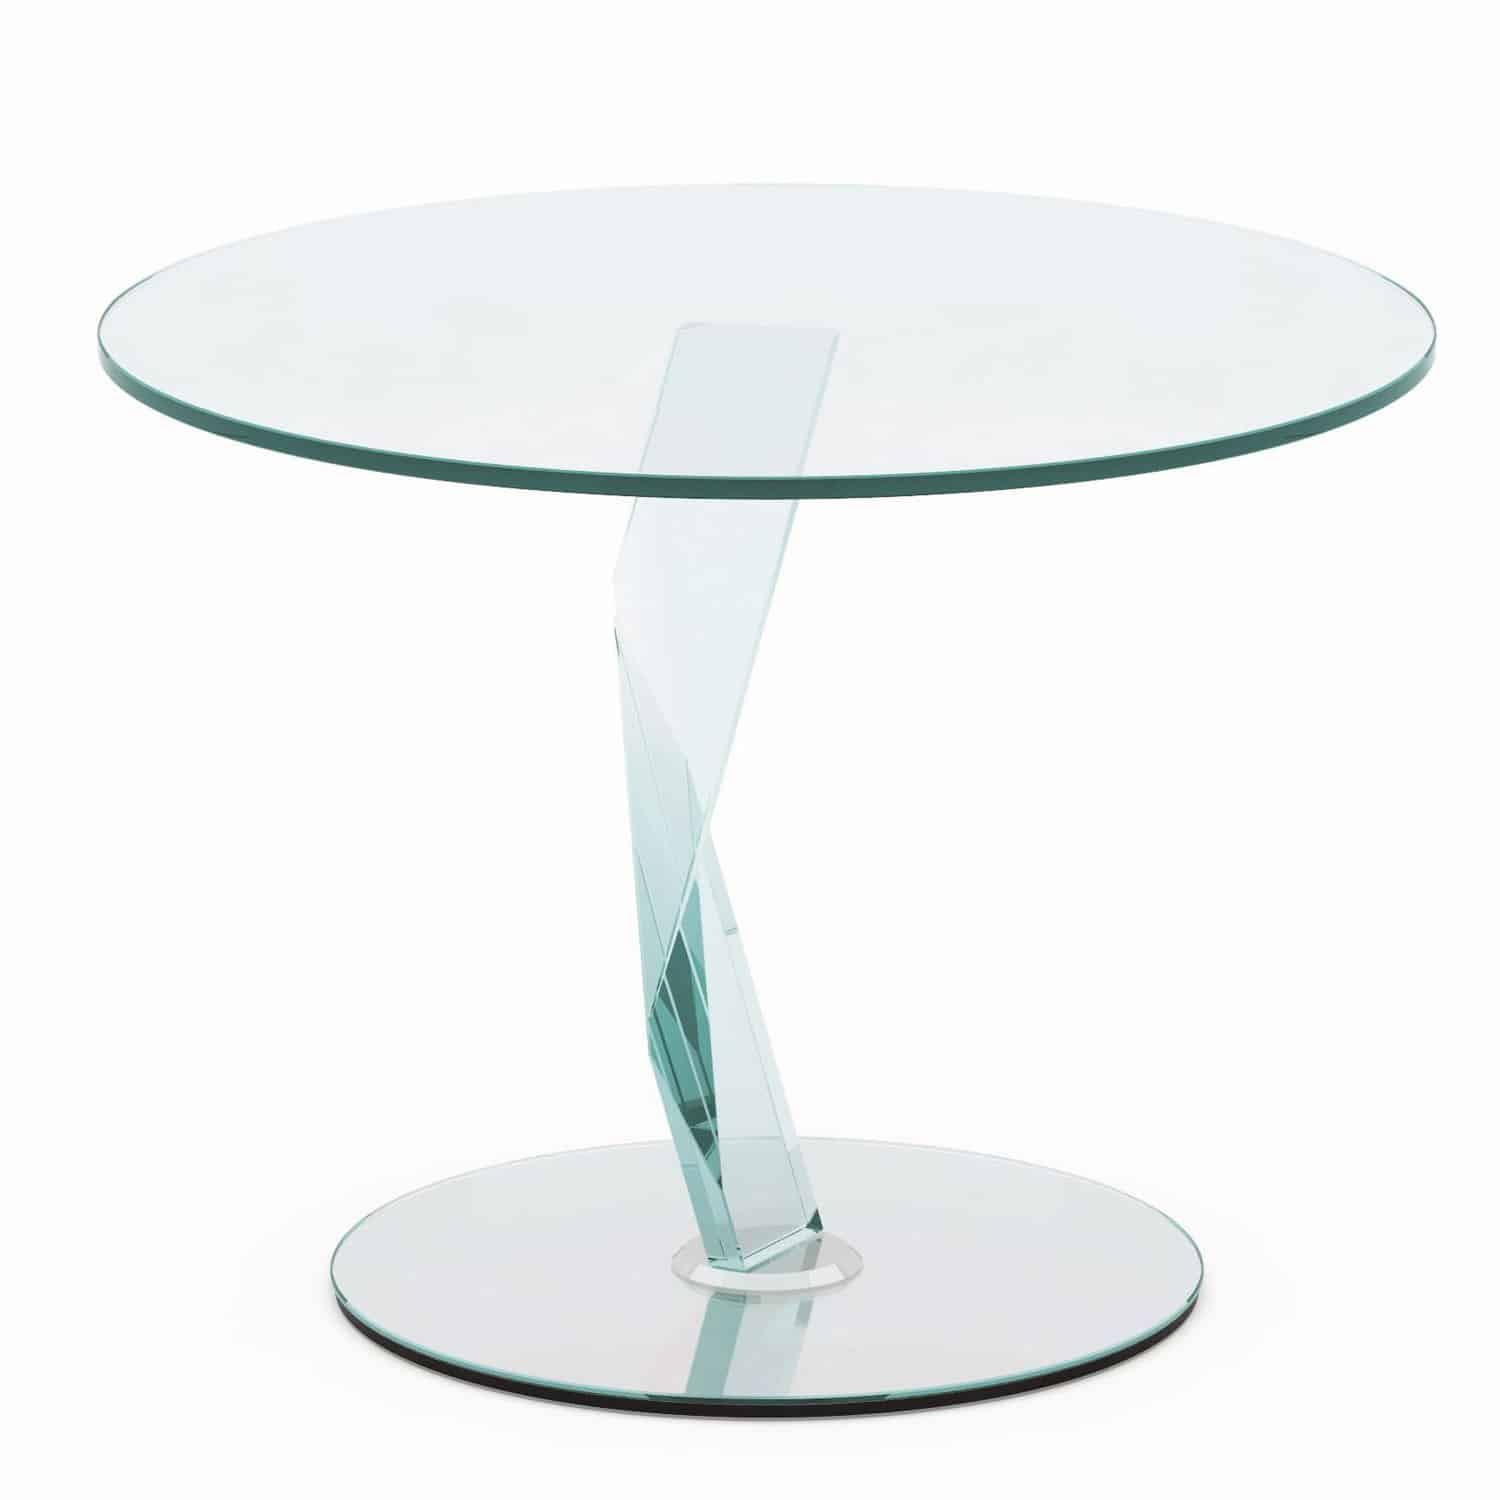 Bakkarat glass side table by tonelli klarity glass for Glass furniture